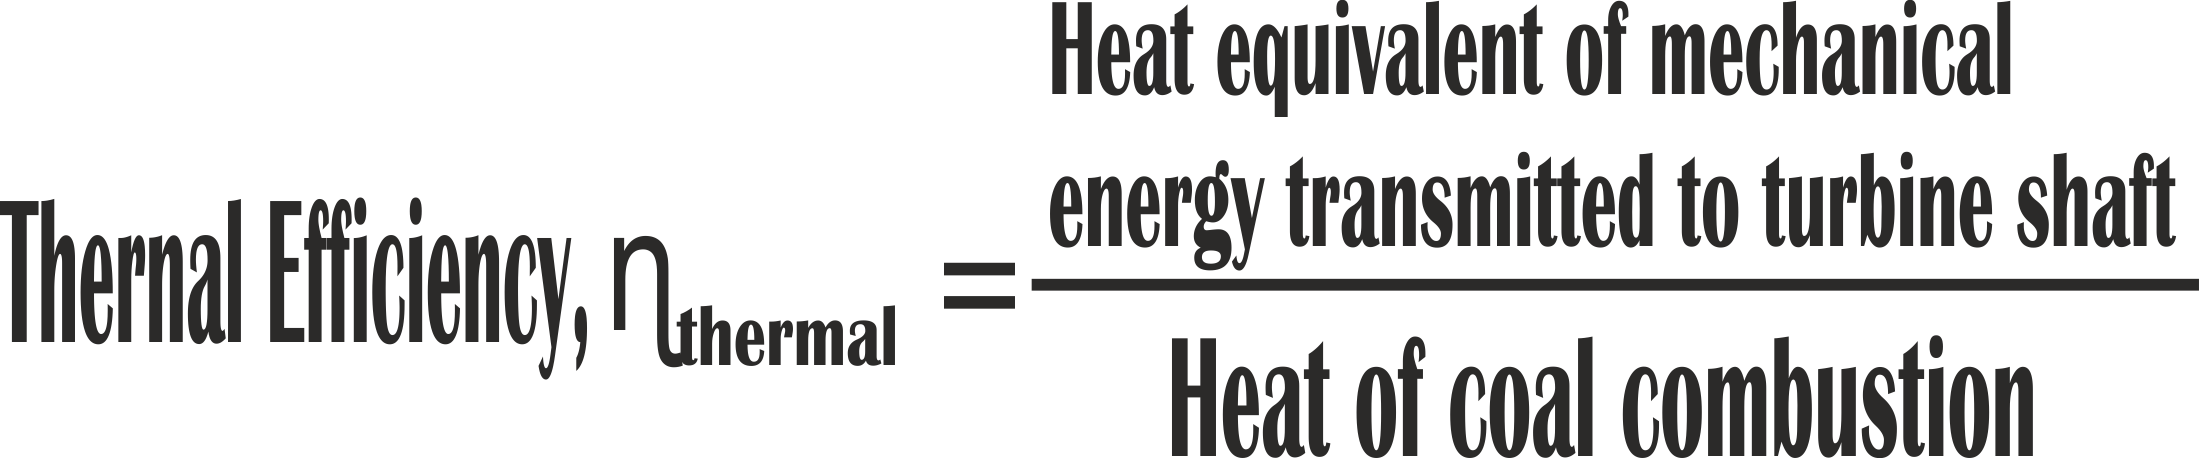 thermal efficiency of thermal power plant